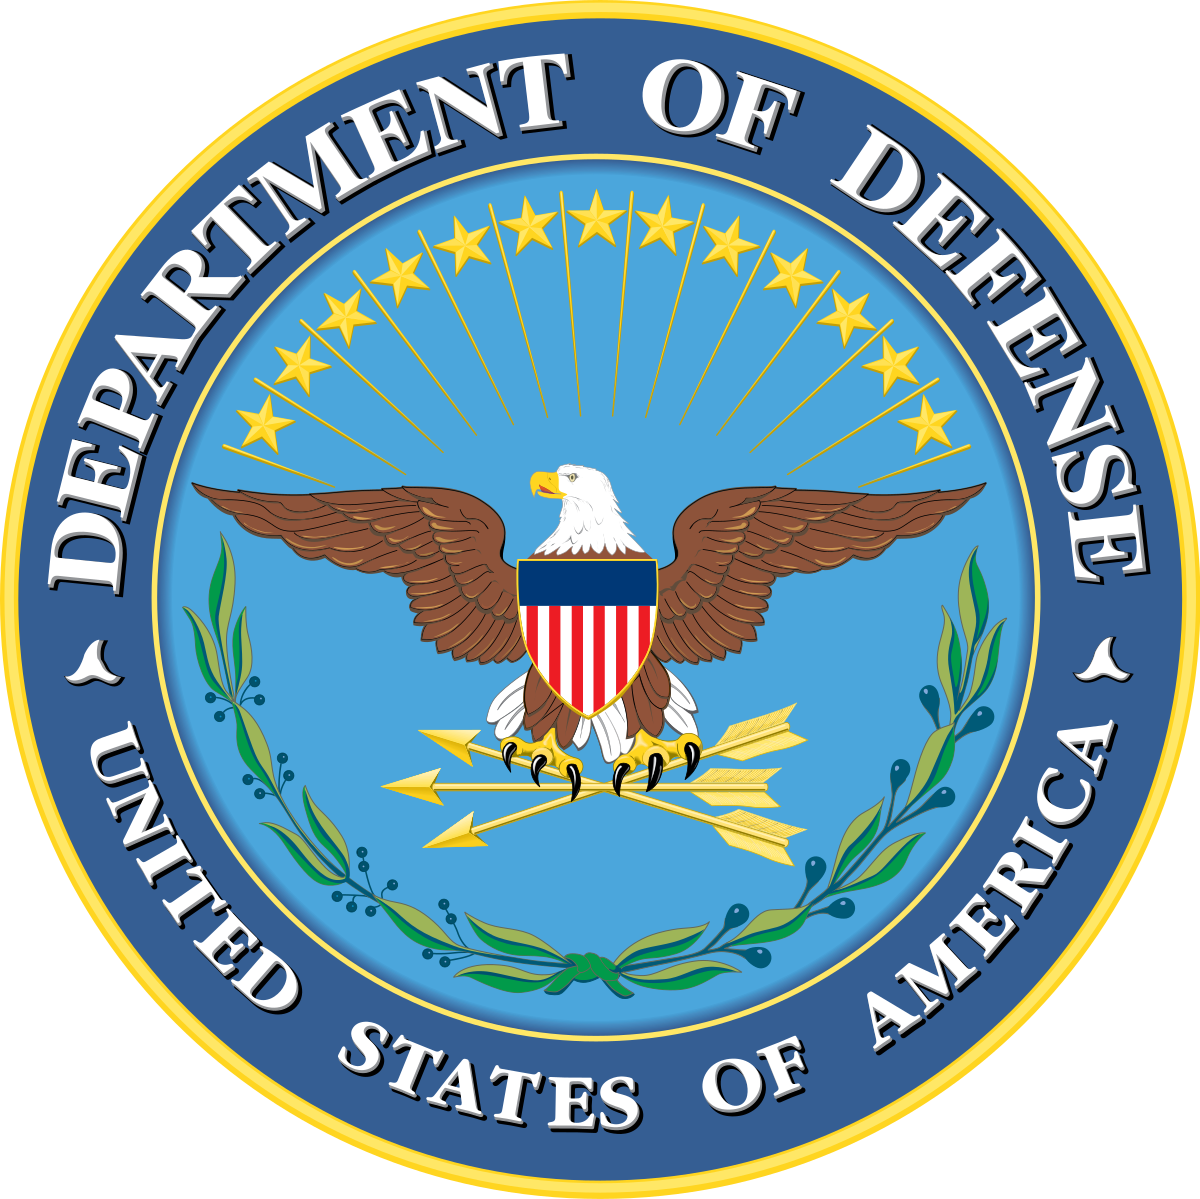 Department Of Defense – United States of America